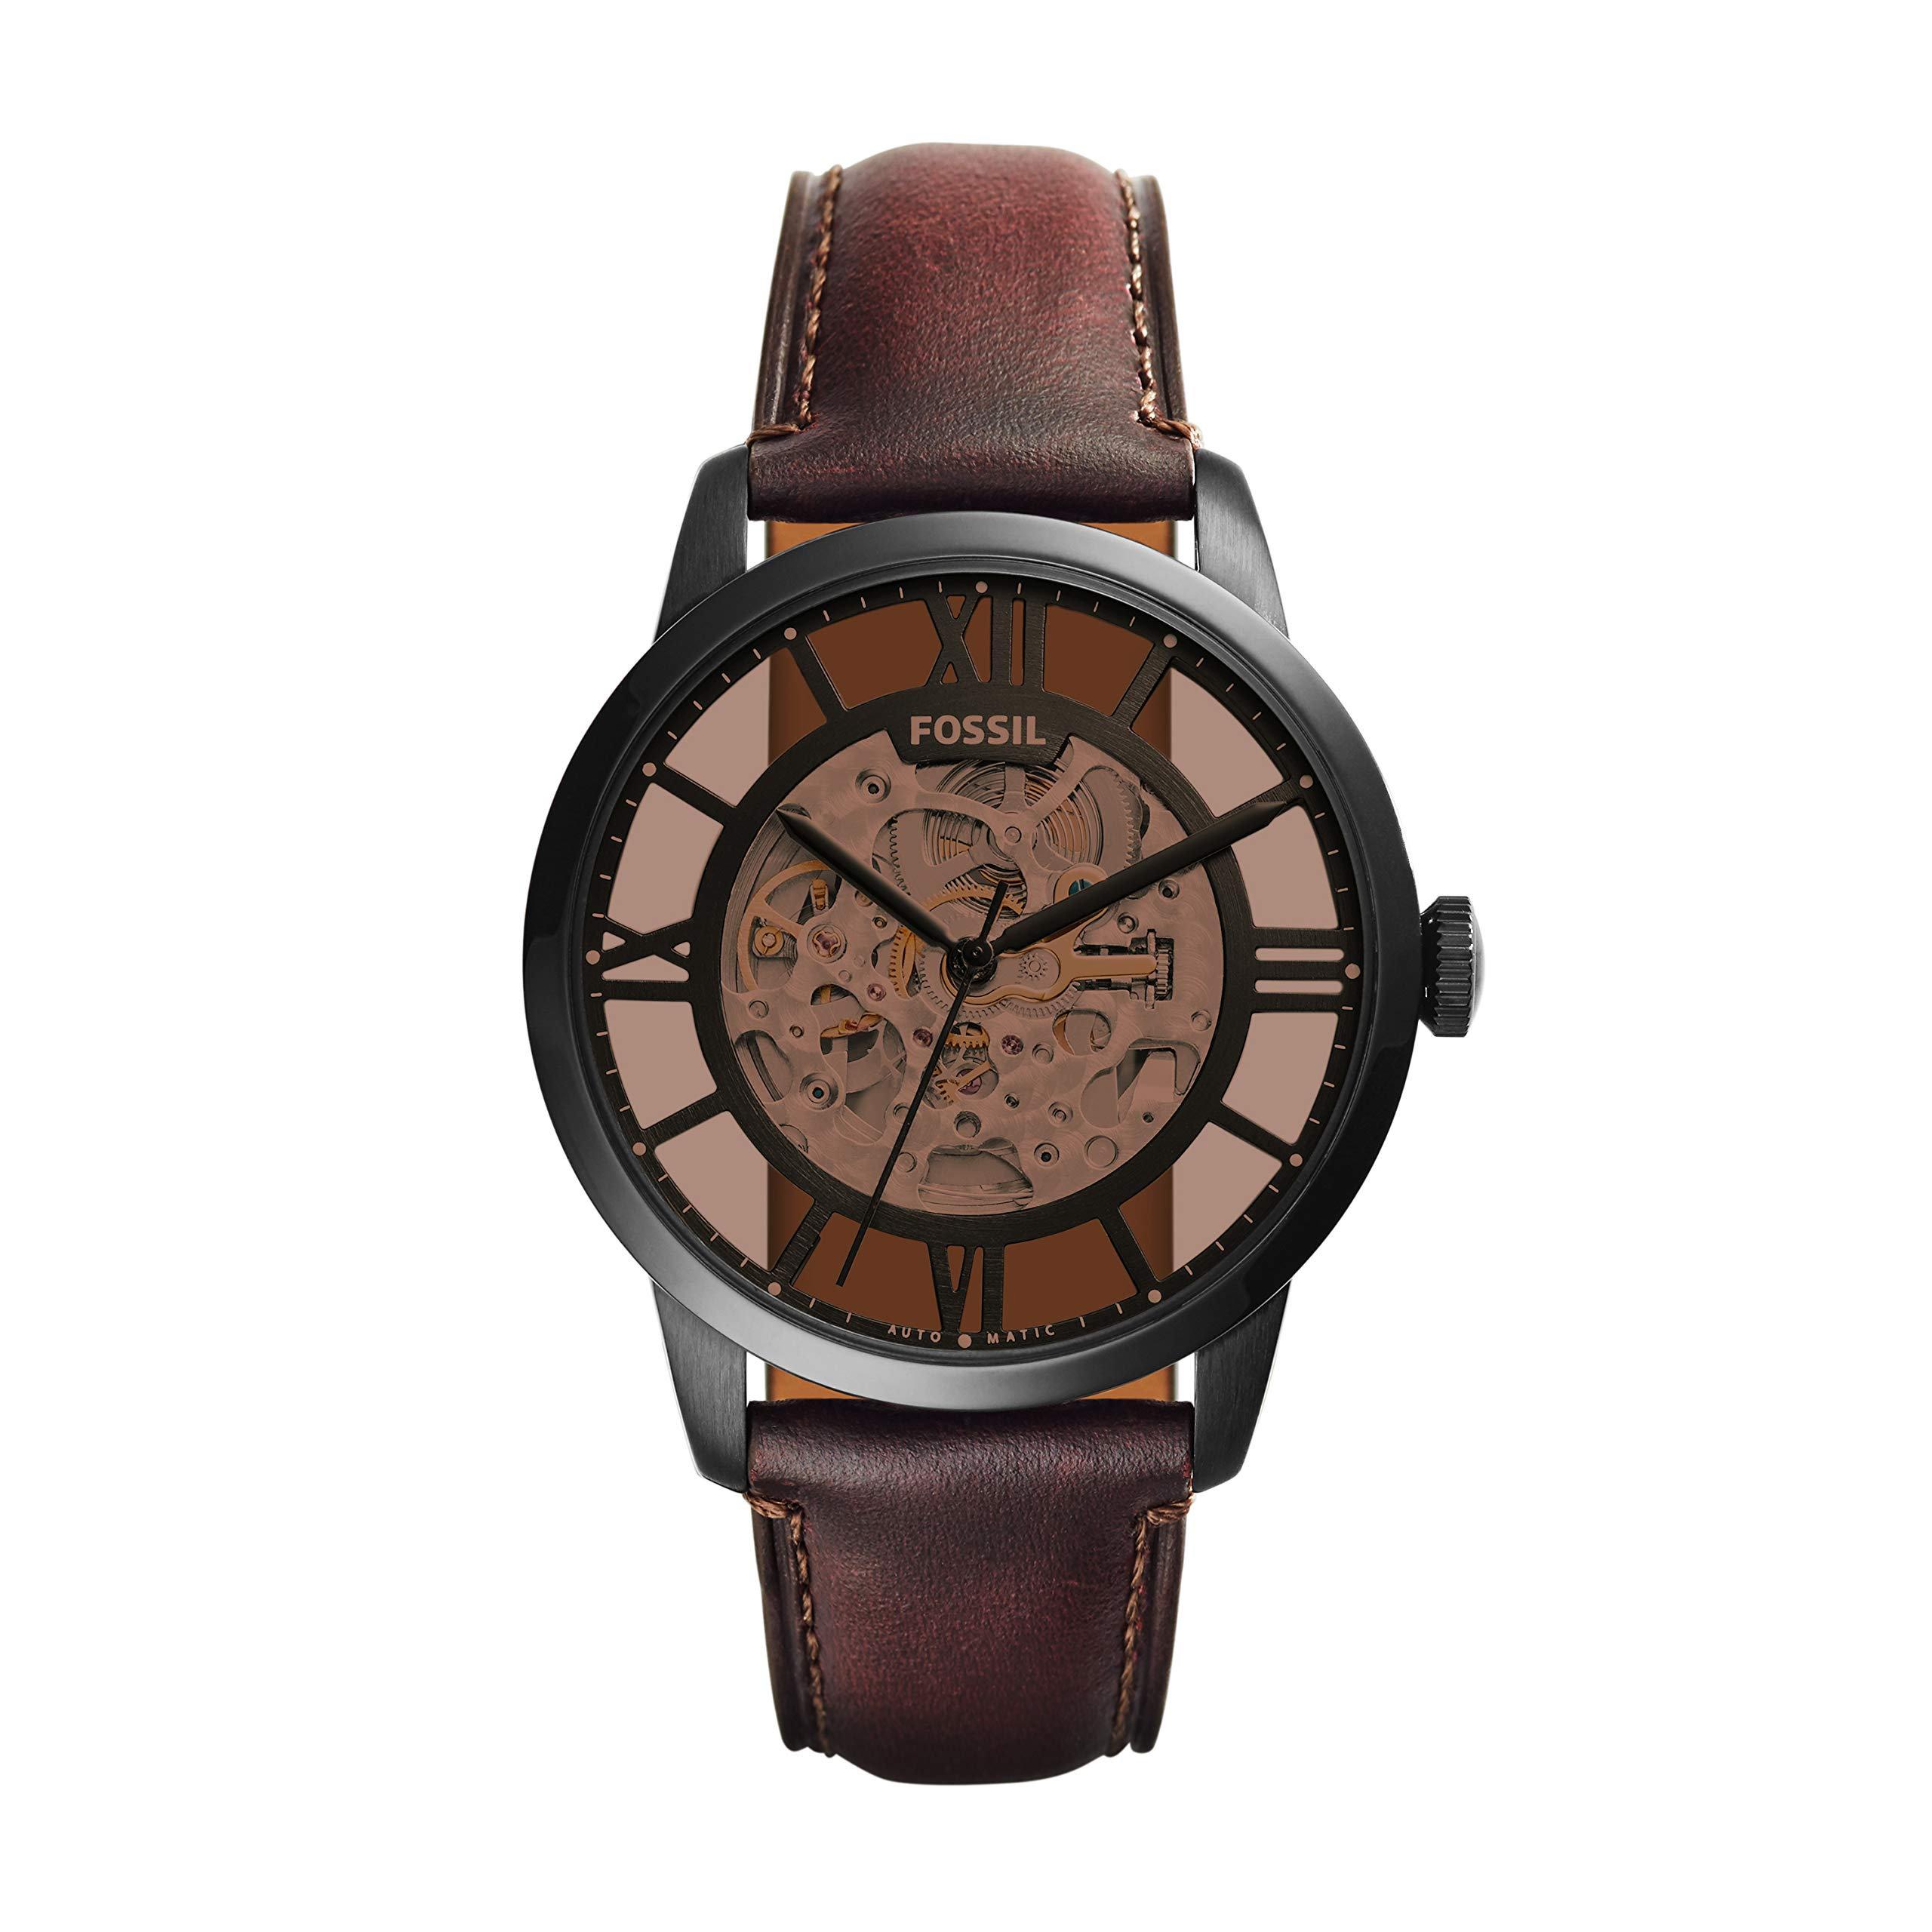 Fossil ME3098 Analog Display Automatic